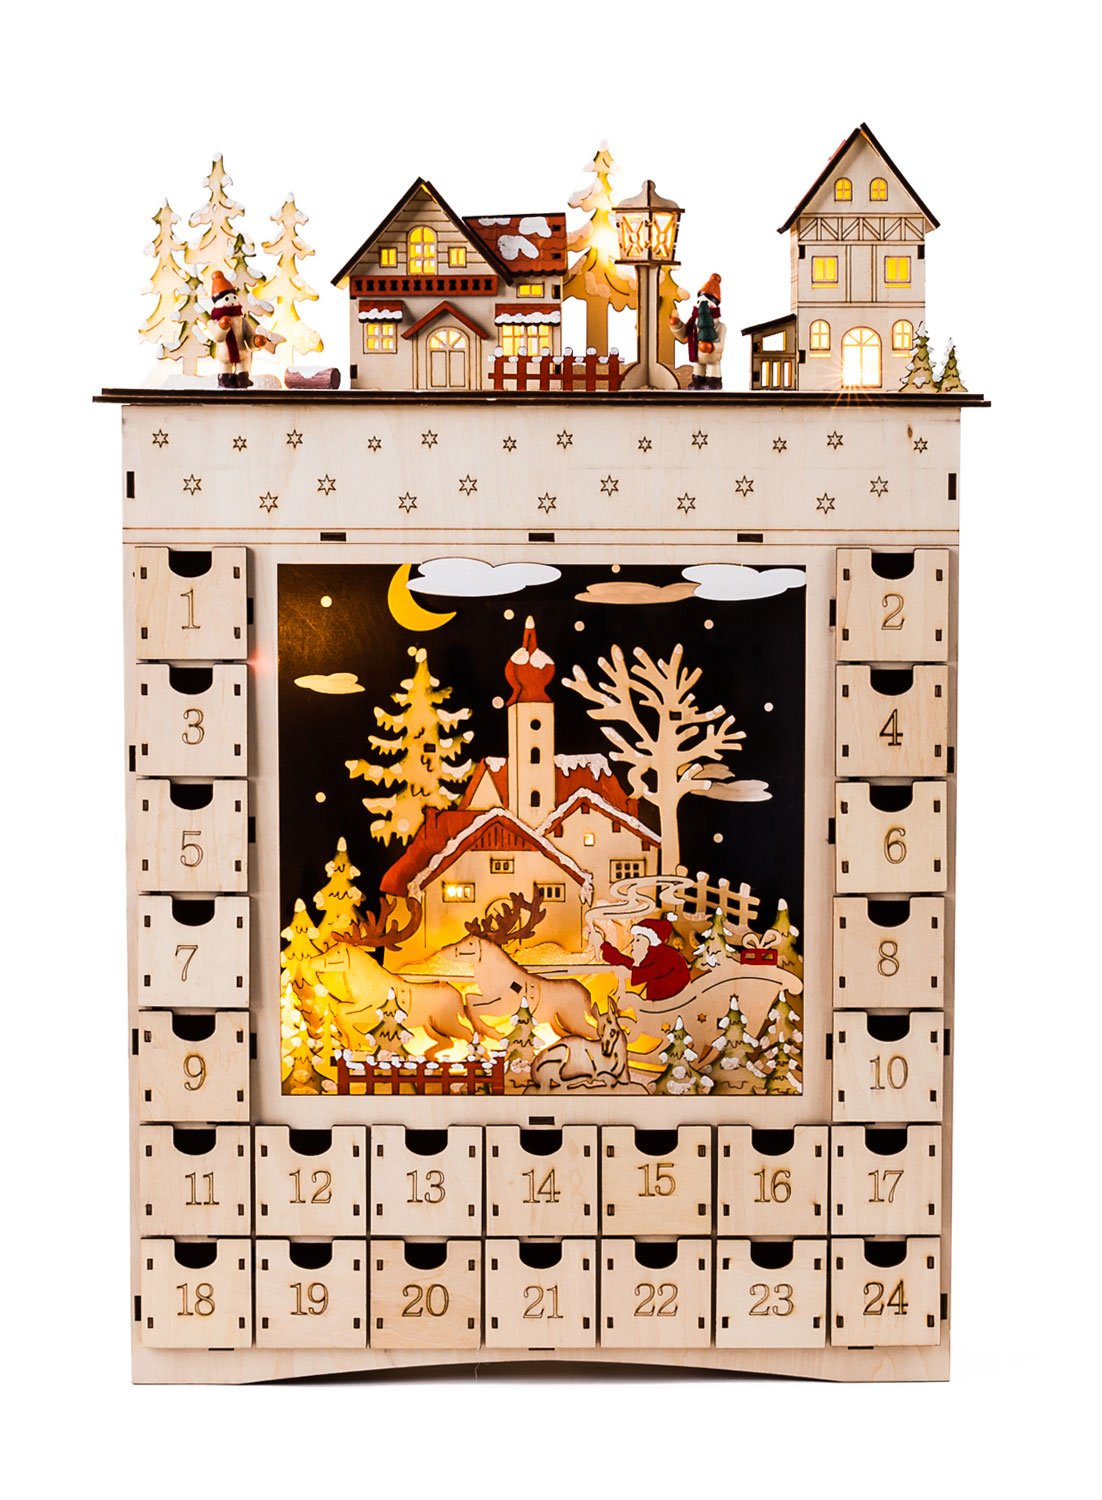 One Hundred 80 Degrees Bavarian Scene Lighted Advent Calendar by One Hundred 80 Degrees CY0024